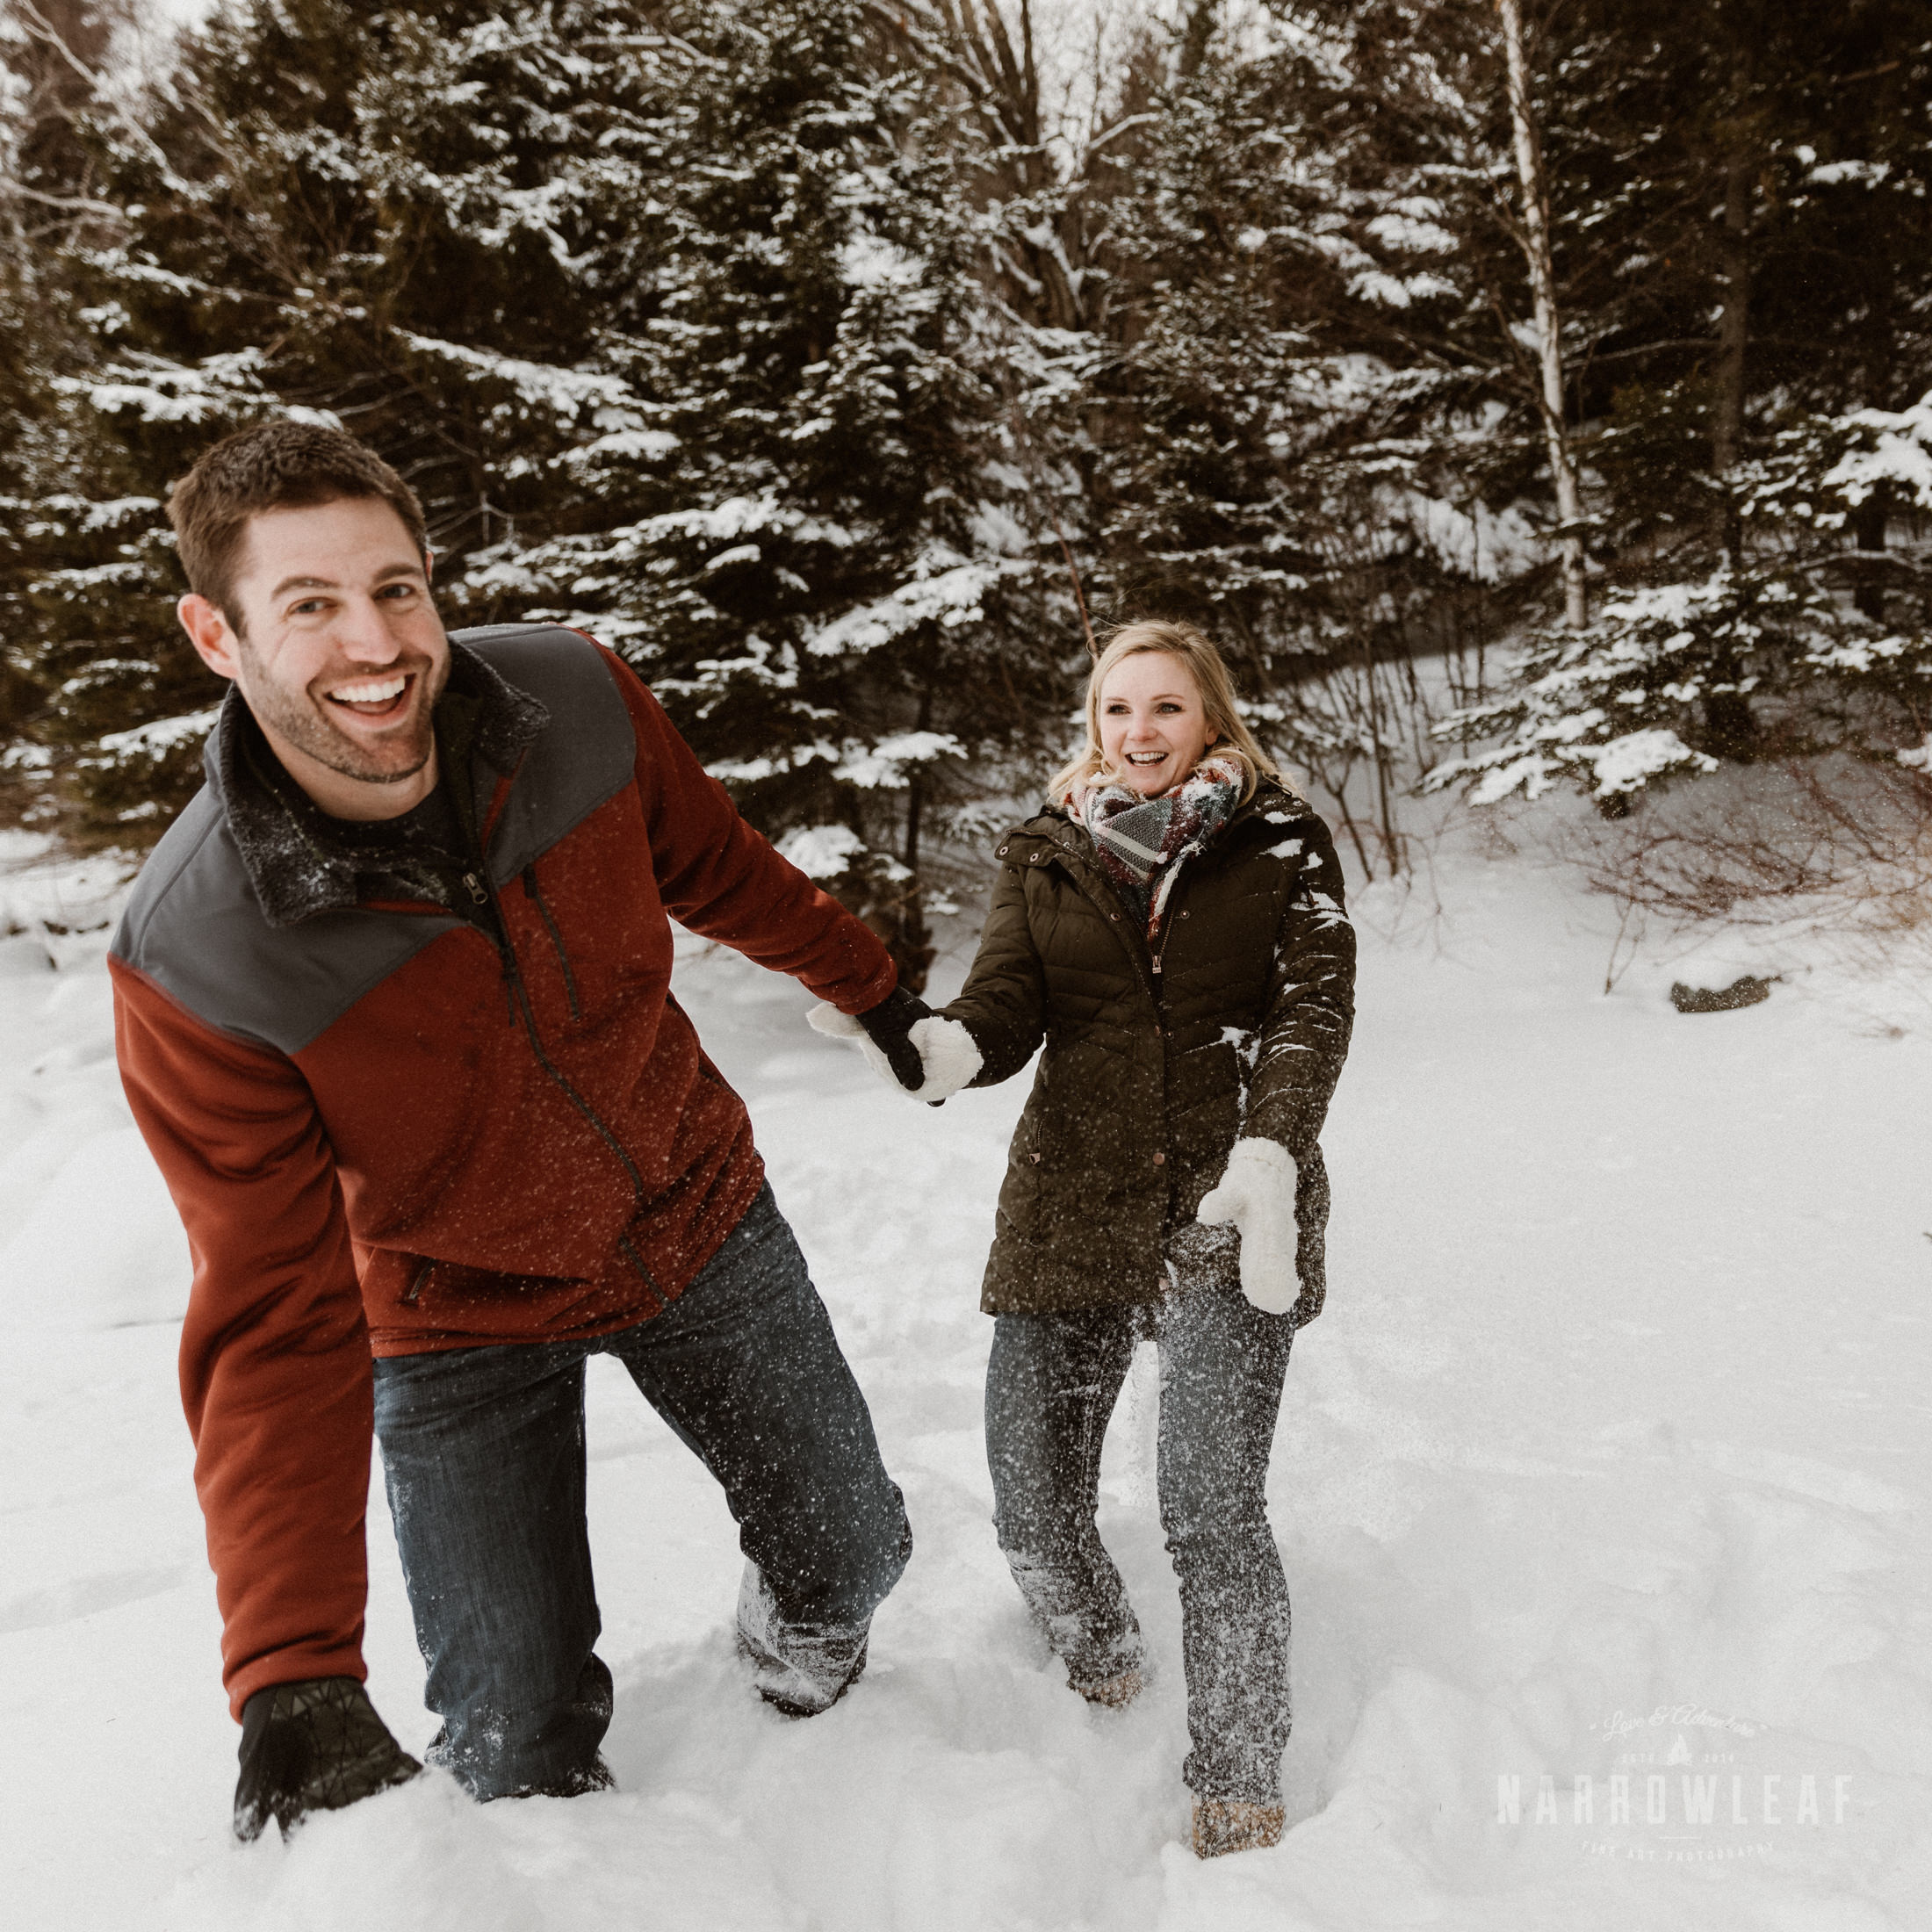 Two-Harbors-MN-winter-Engagement-photos-Narrowleaf_Love_and_Adventure_Photography-9228.jpg